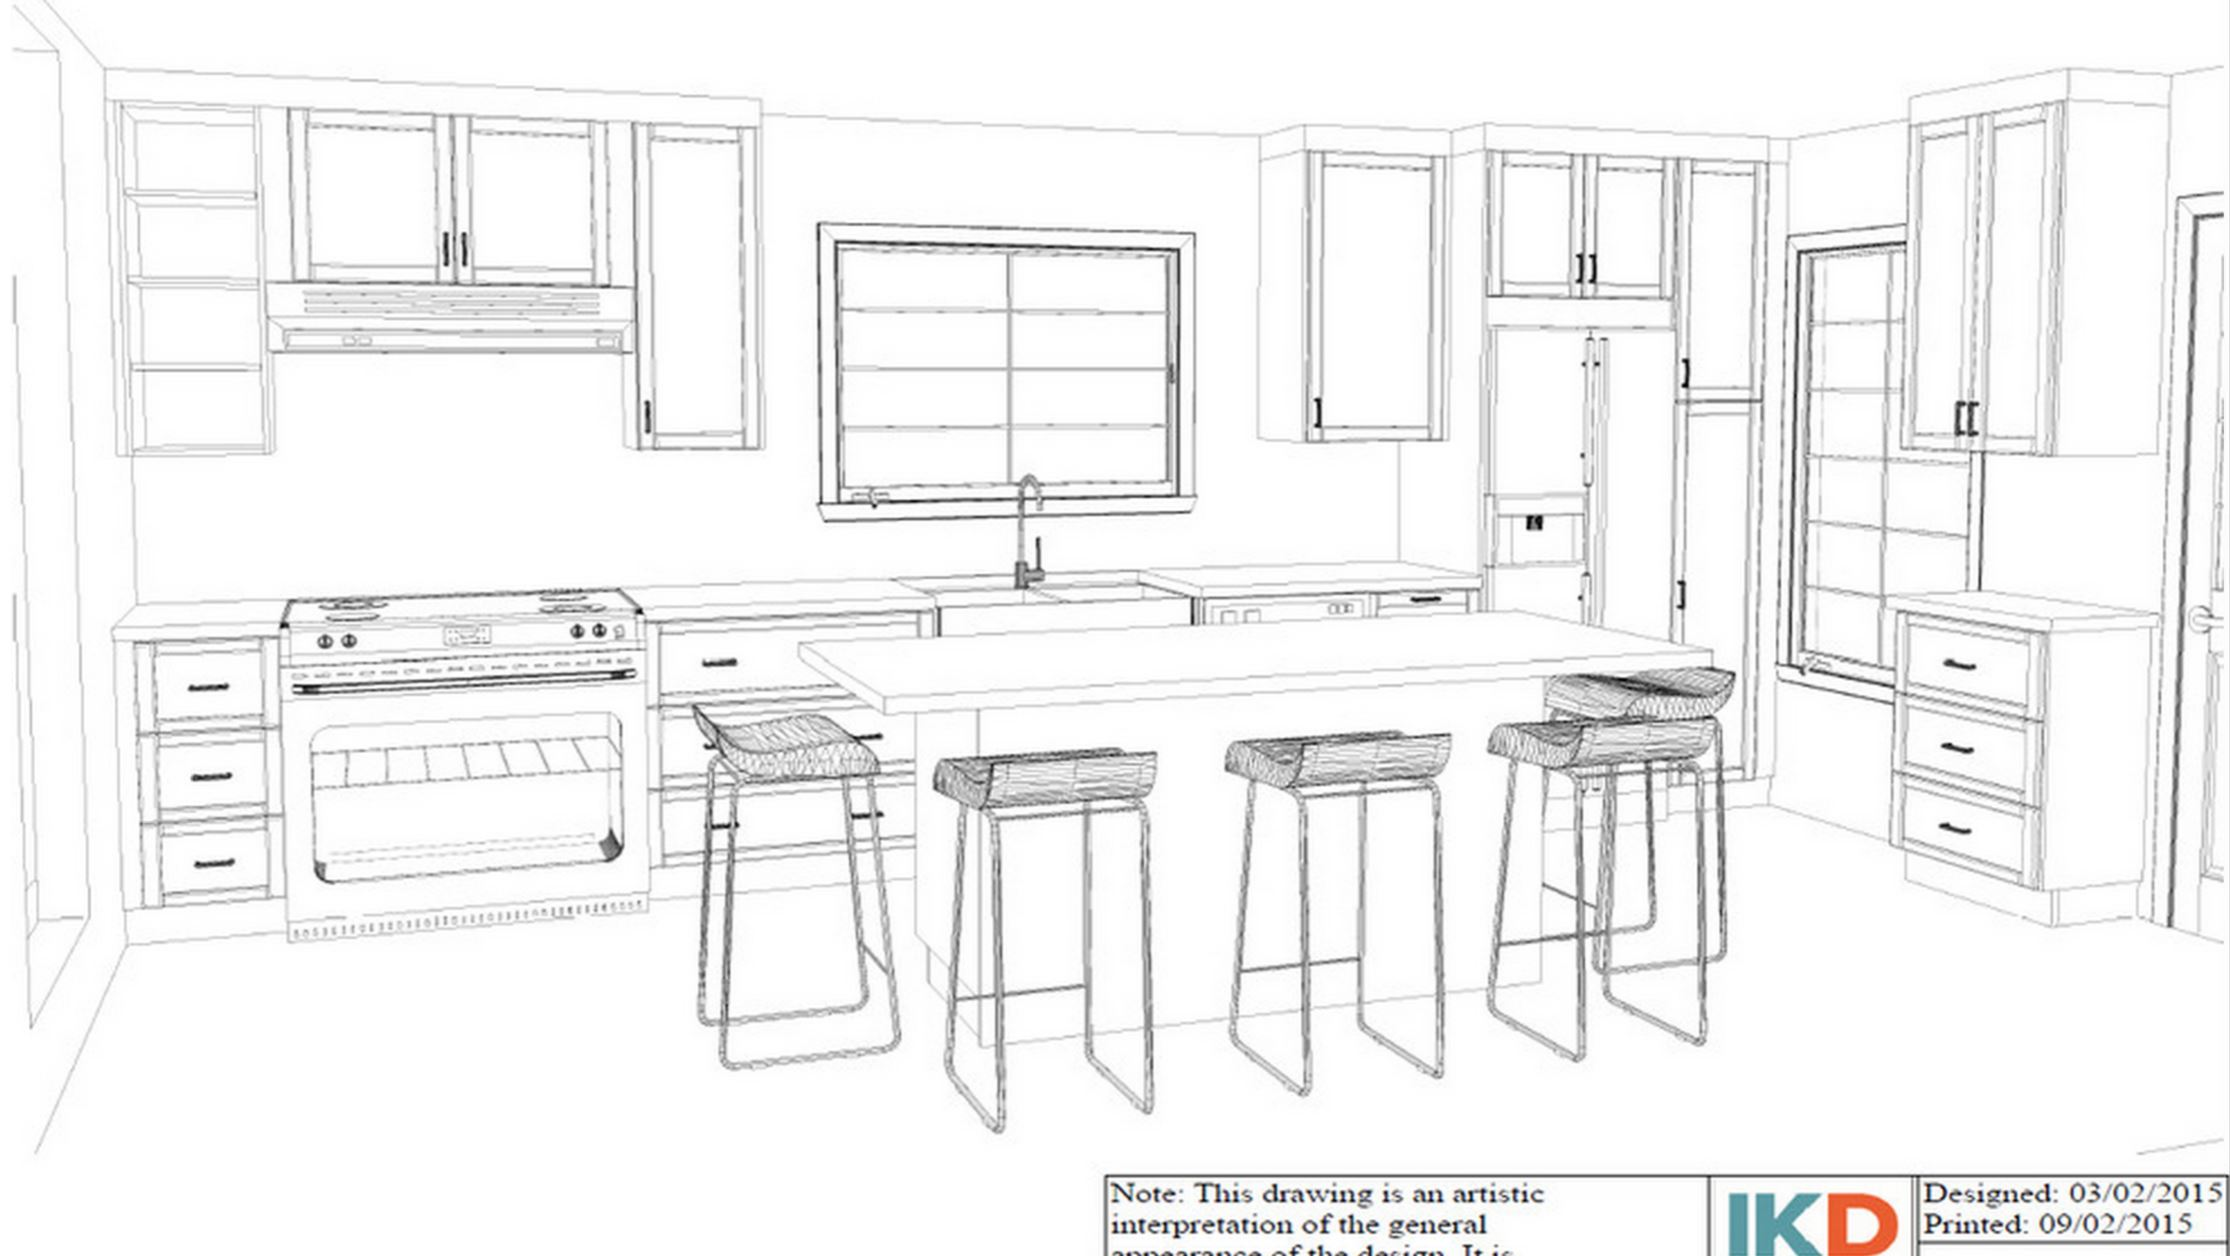 Three lessons from an ikea kitchen design Kitchen design lesson plans